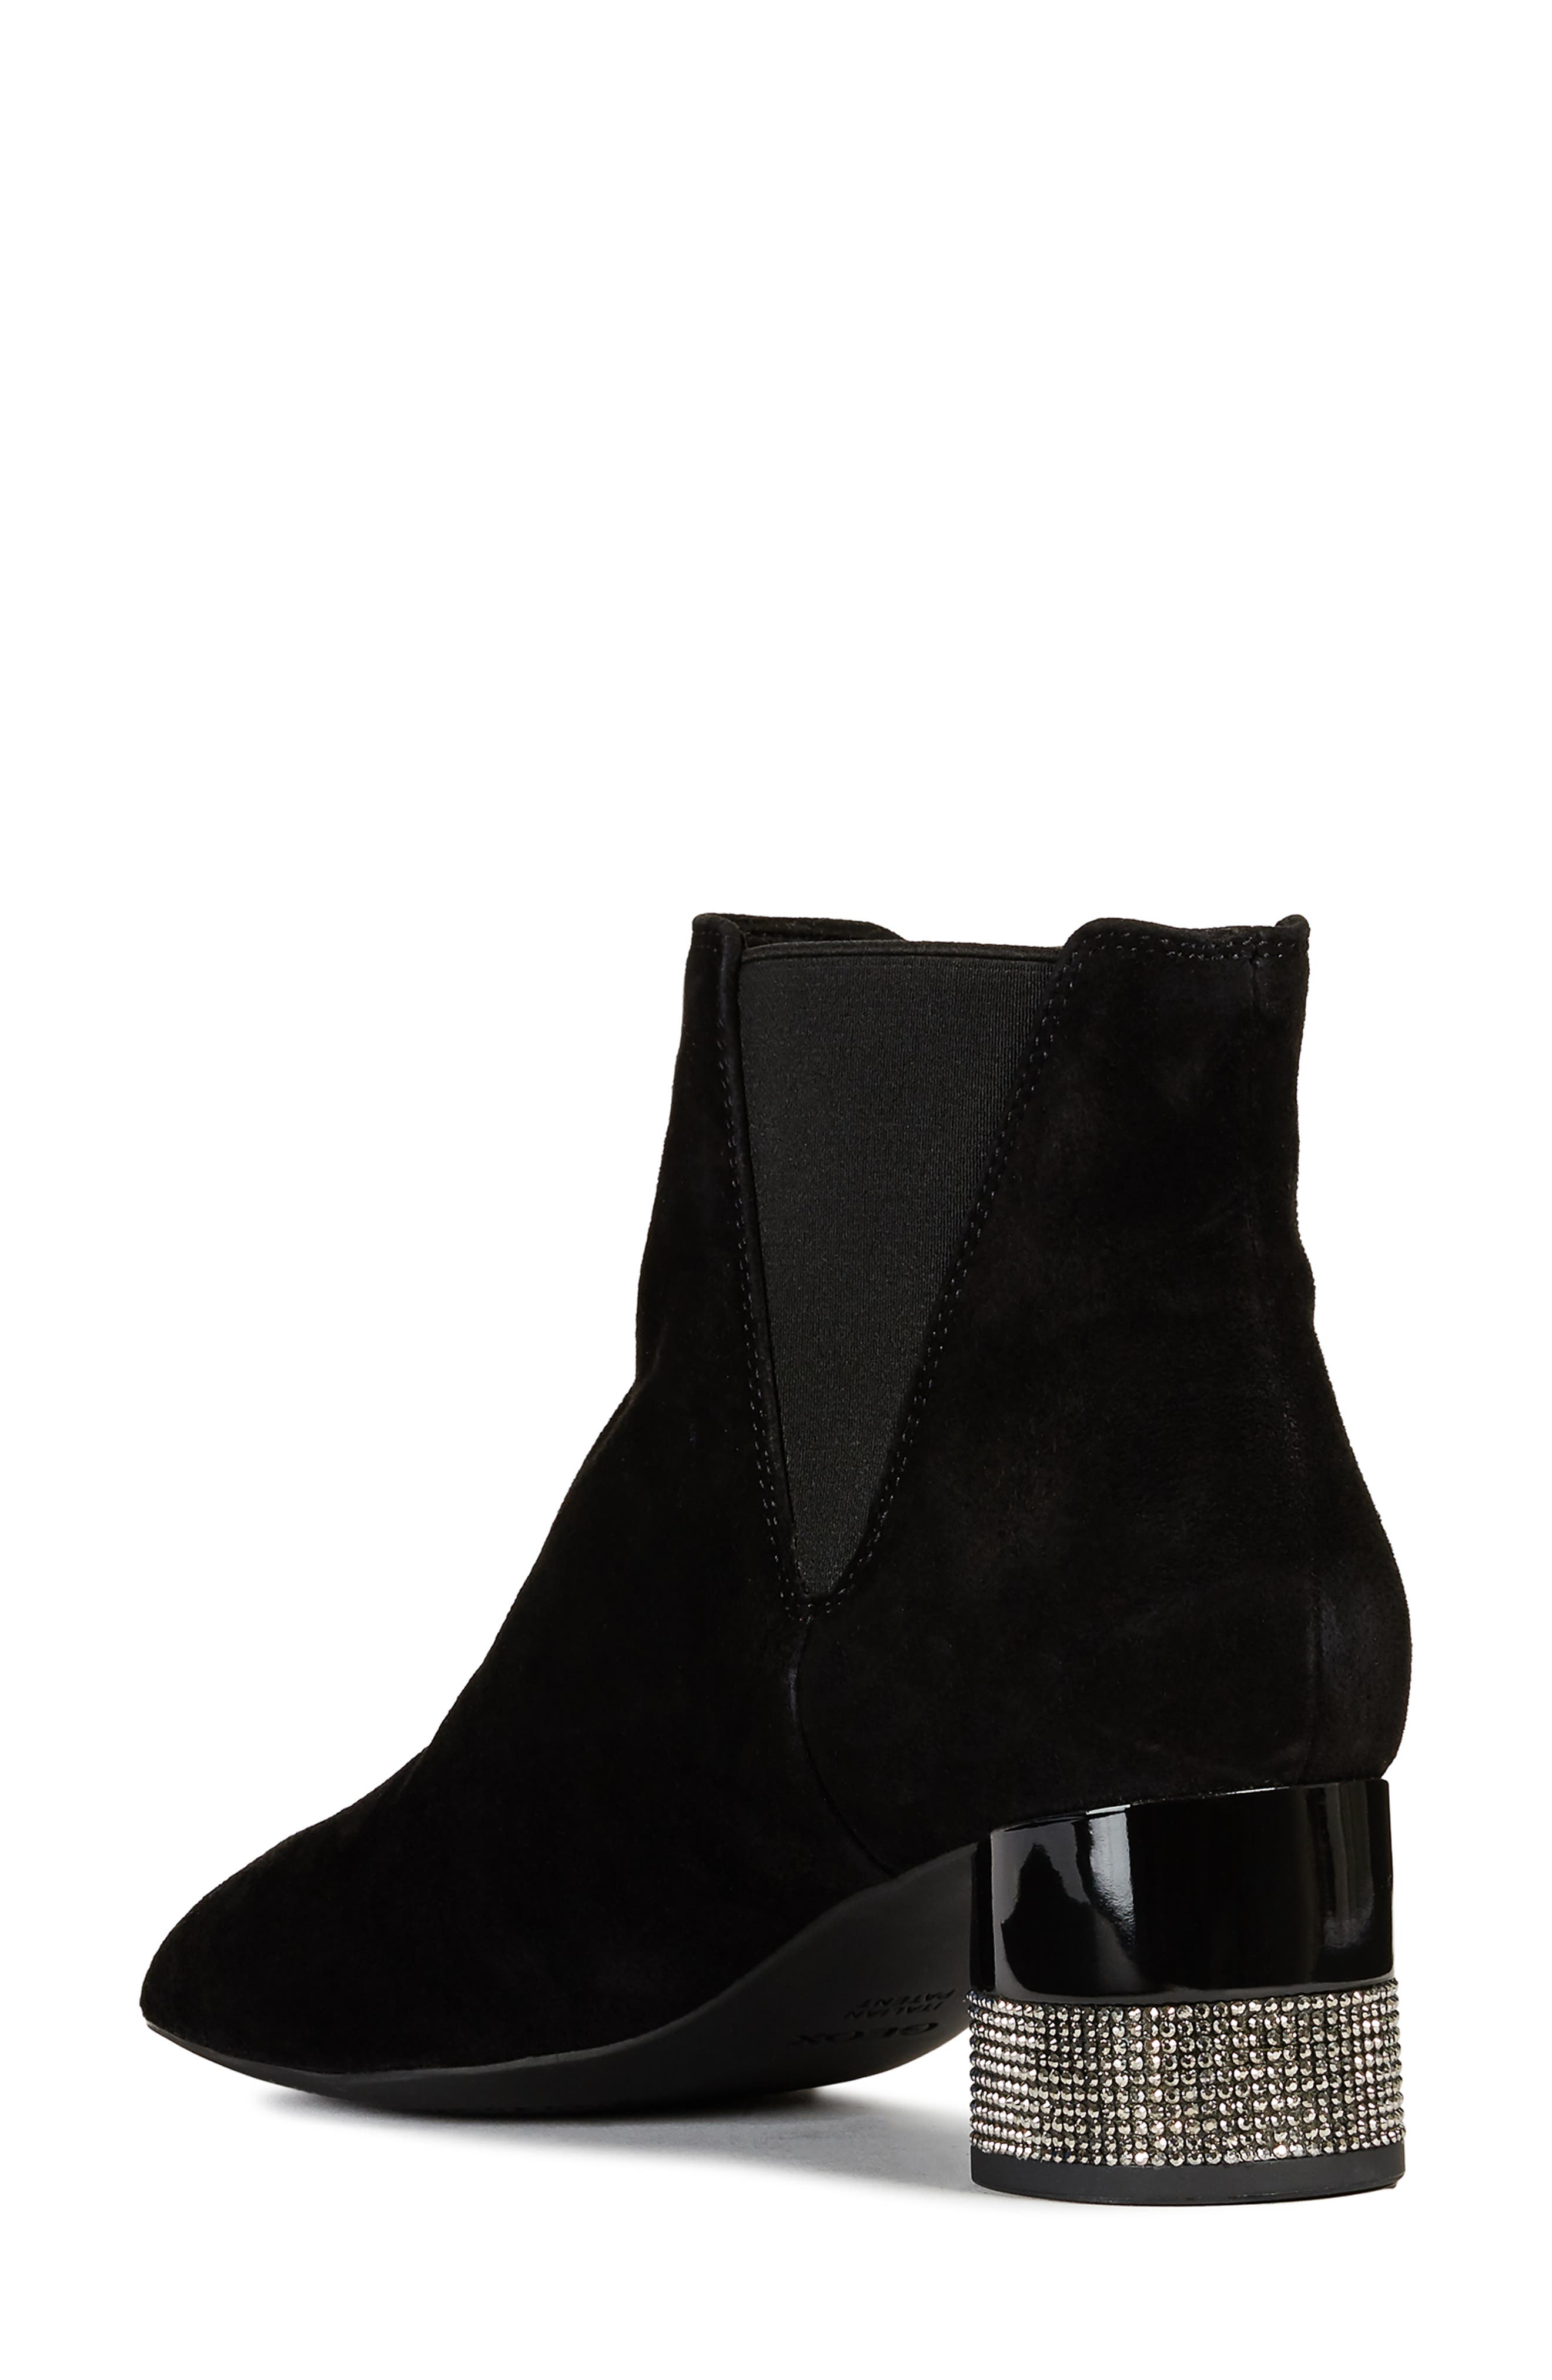 GEOX,                             Chloo Chelsea Waterproof Waterproof Bootie,                             Alternate thumbnail 2, color,                             BLACK SUEDE